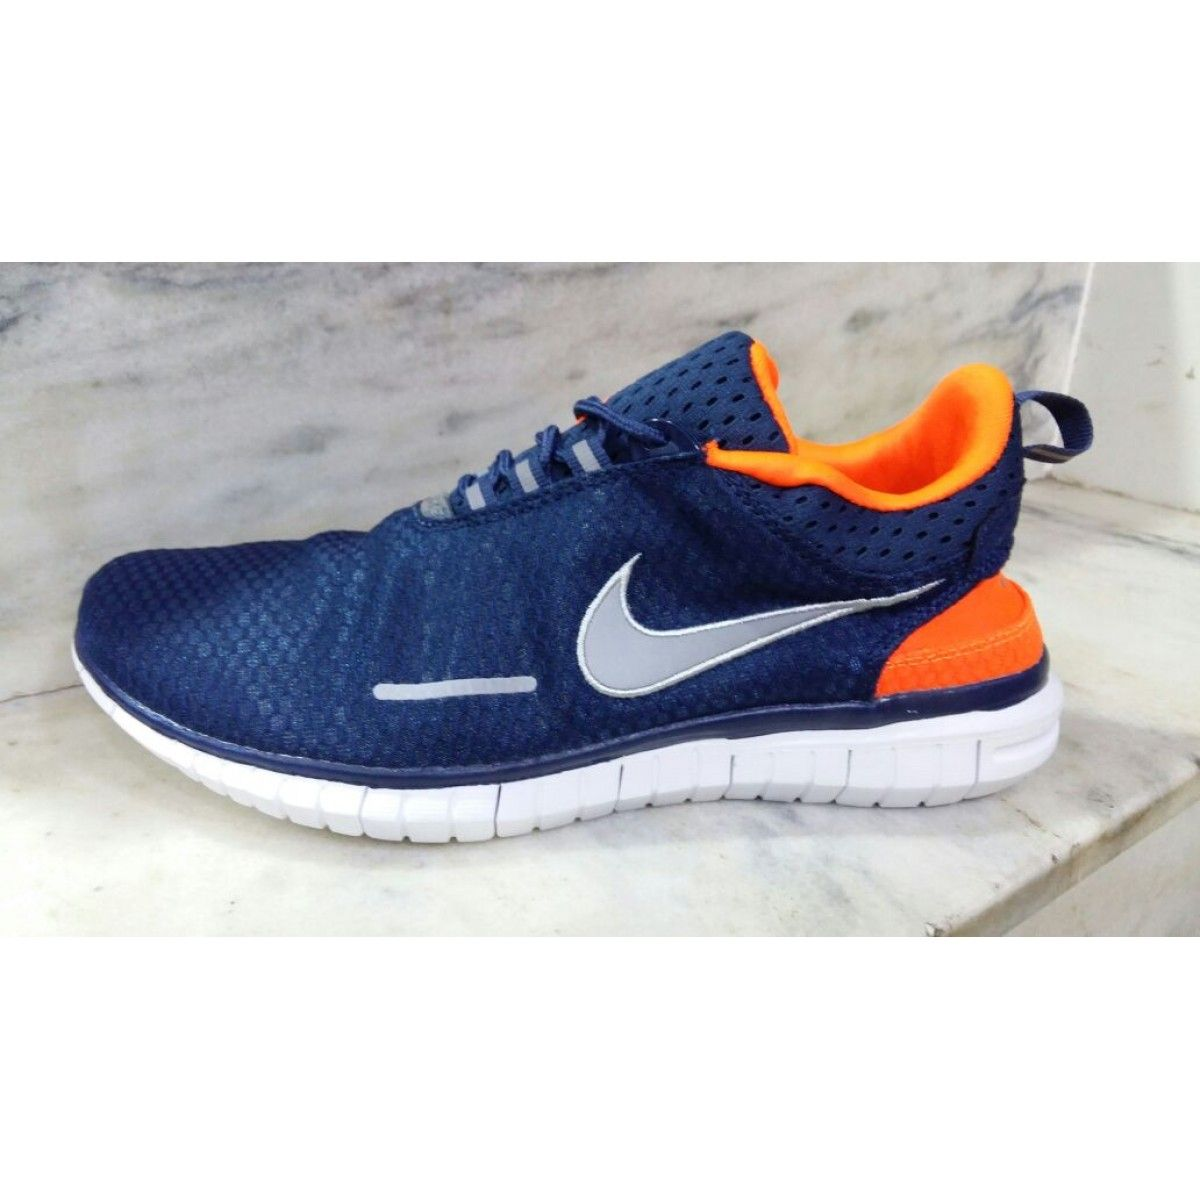 Cheap Nike Factory Store Online Womens Cheap Nike Fs Lite Run Blue Shoes